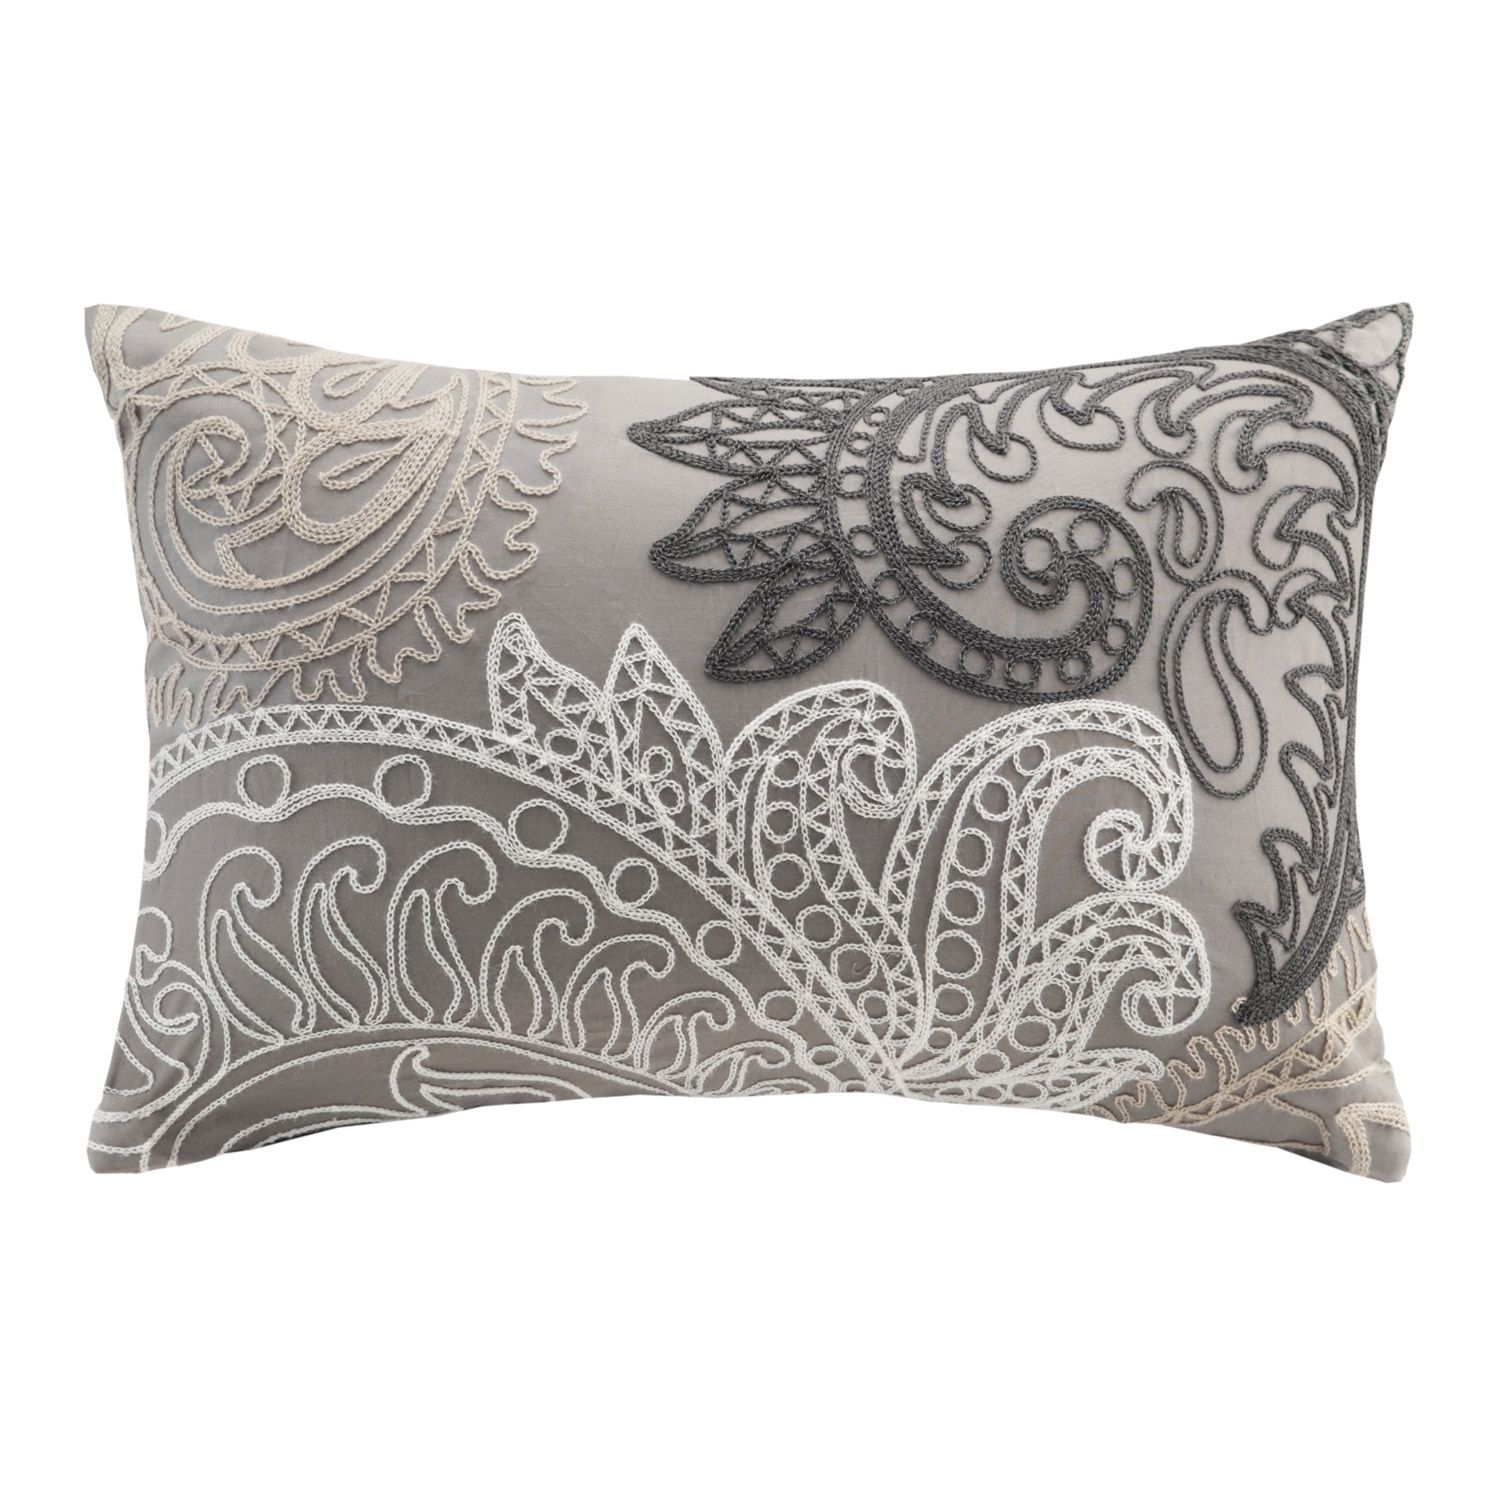 Overstock Com Online Shopping Bedding Furniture Electronics Jewelry Clothing More Embroidered Throw Pillows Throw Pillows Unique Throw Pillows